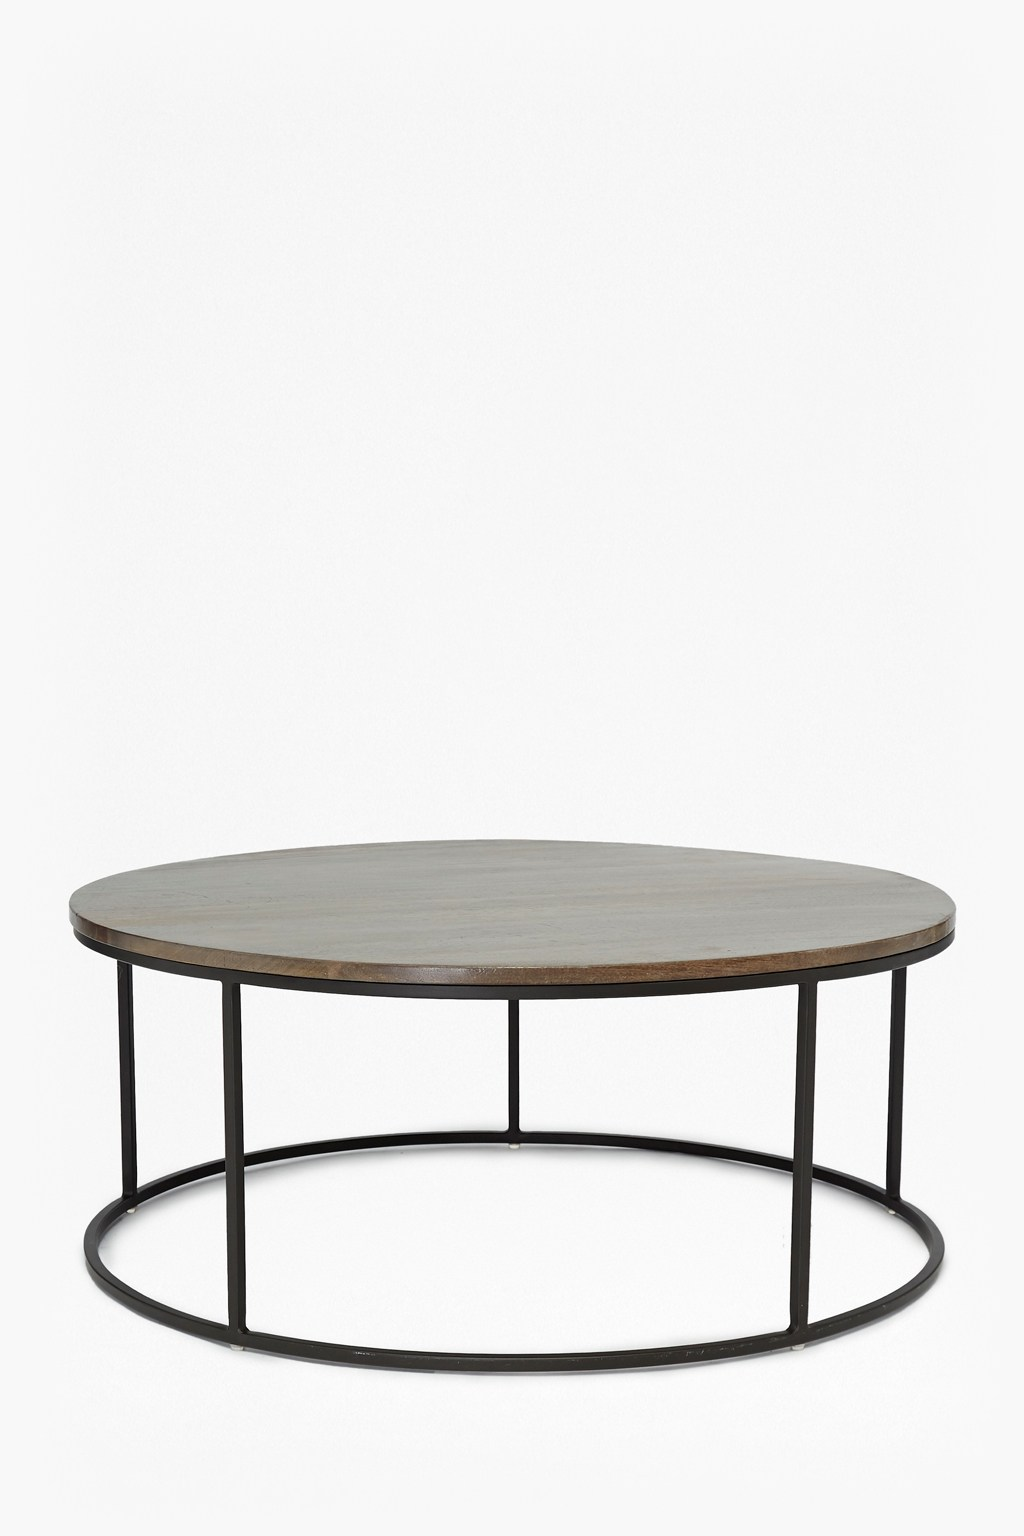 Round Industrial End Table Industrial Timber Round Coffee Table Collection French